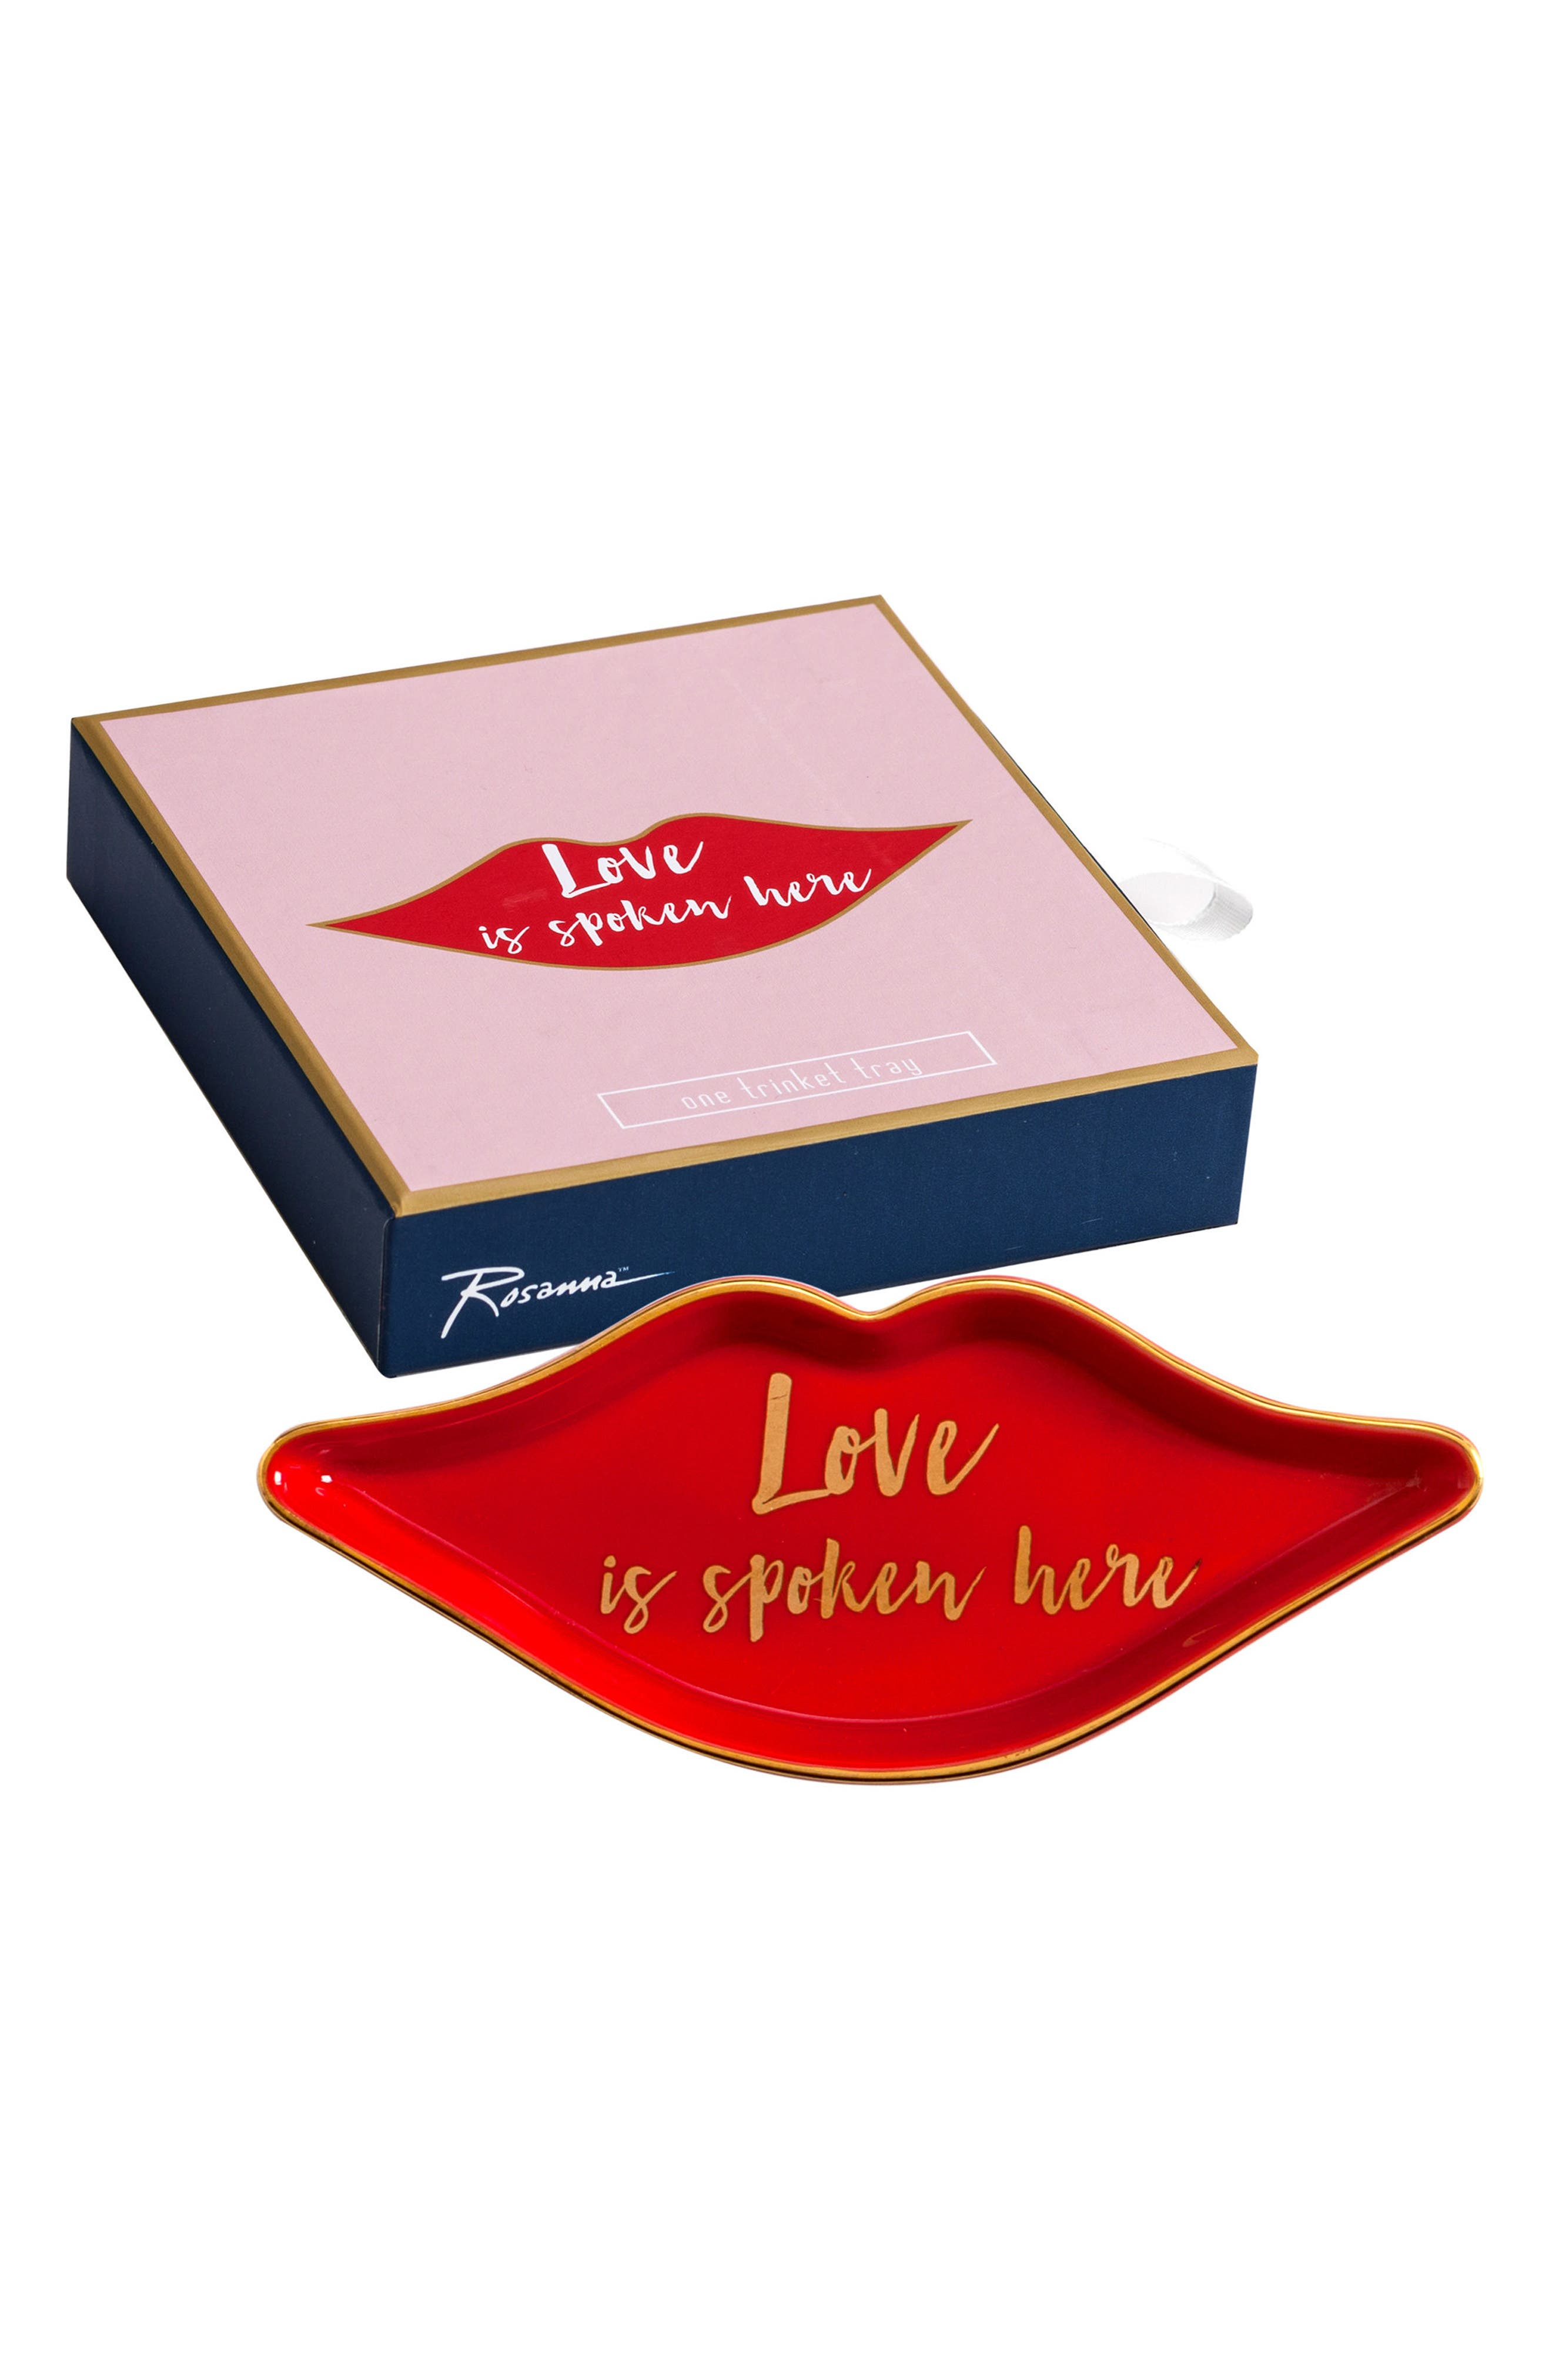 Love Is Spoken Here Tray,                             Main thumbnail 1, color,                             600